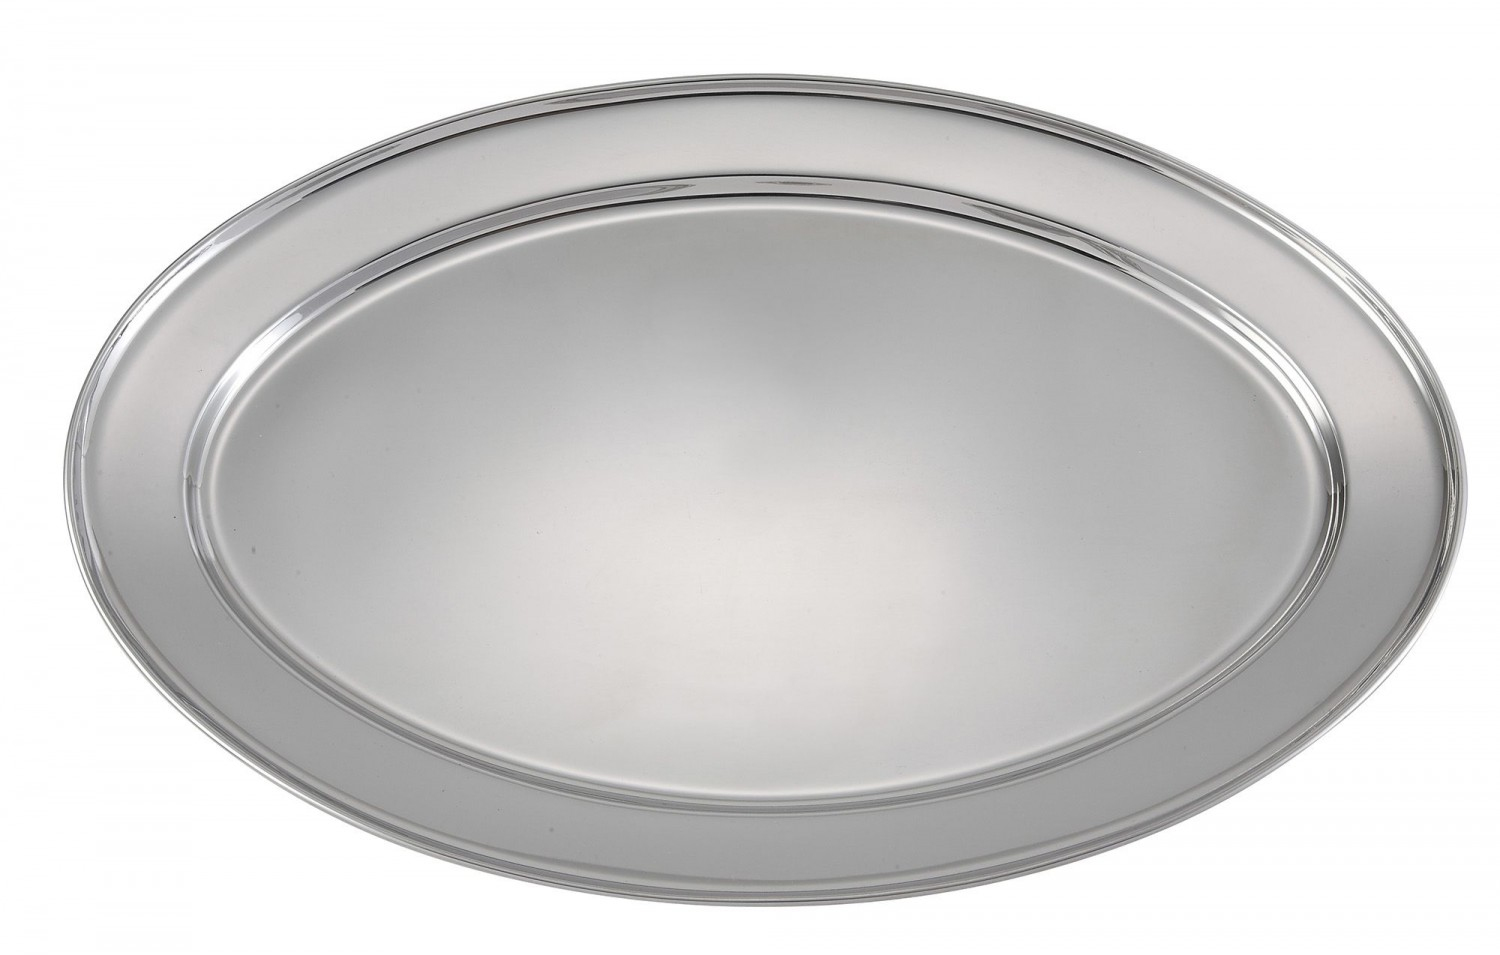 Winco OPL-22 Oval Stainless Steel Platter 21-5/8& x 15&